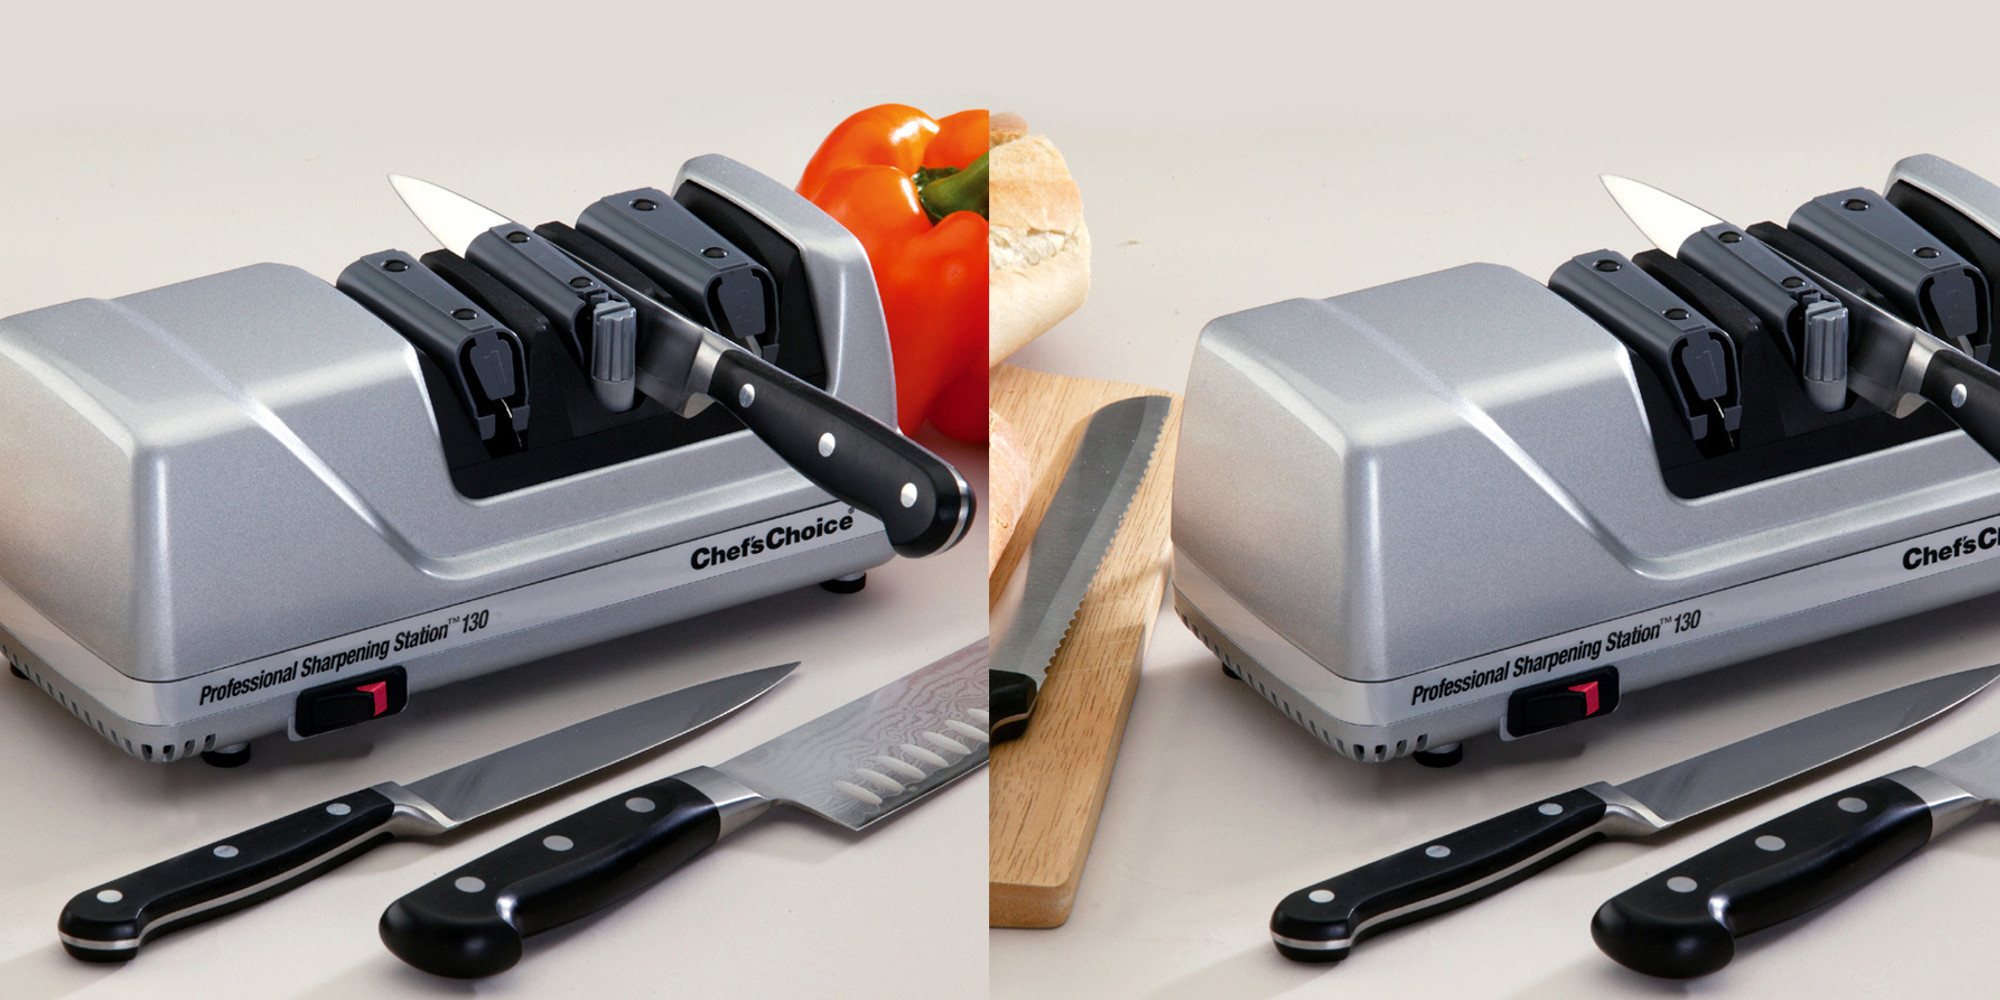 The Chef'sChoice 130 Electric Sharpener will keep your ...